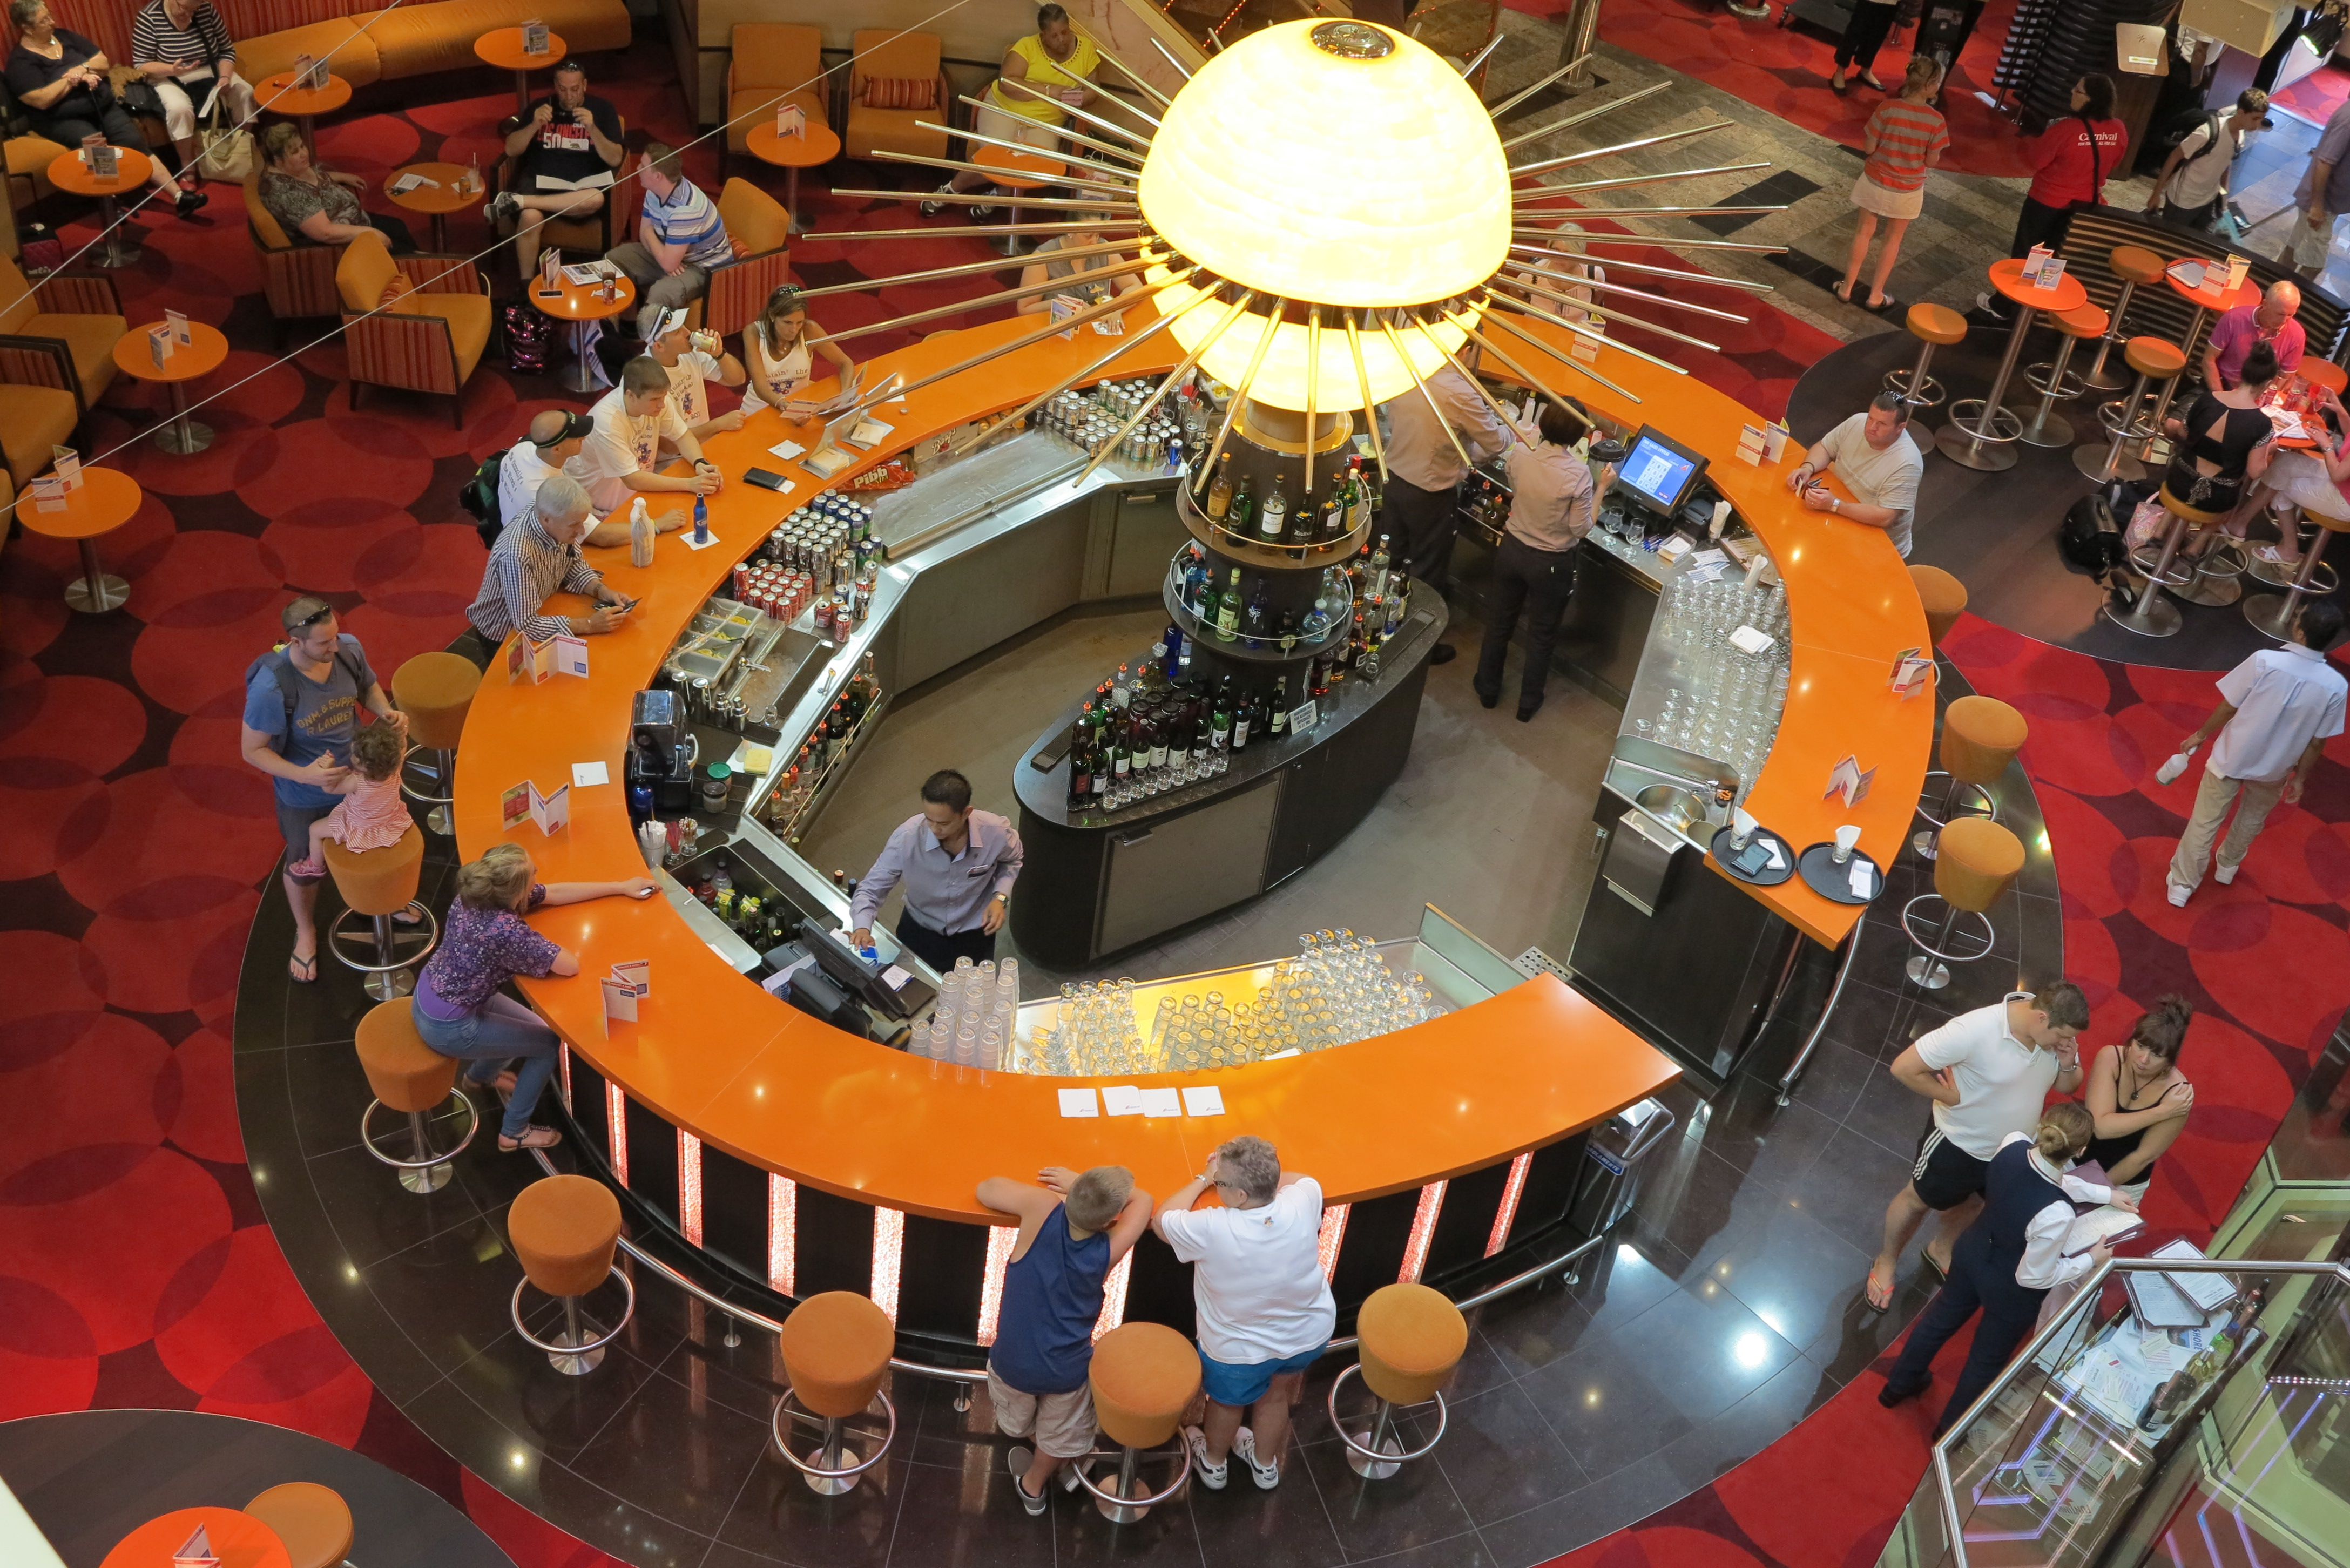 At the centre of things: The atrium bar